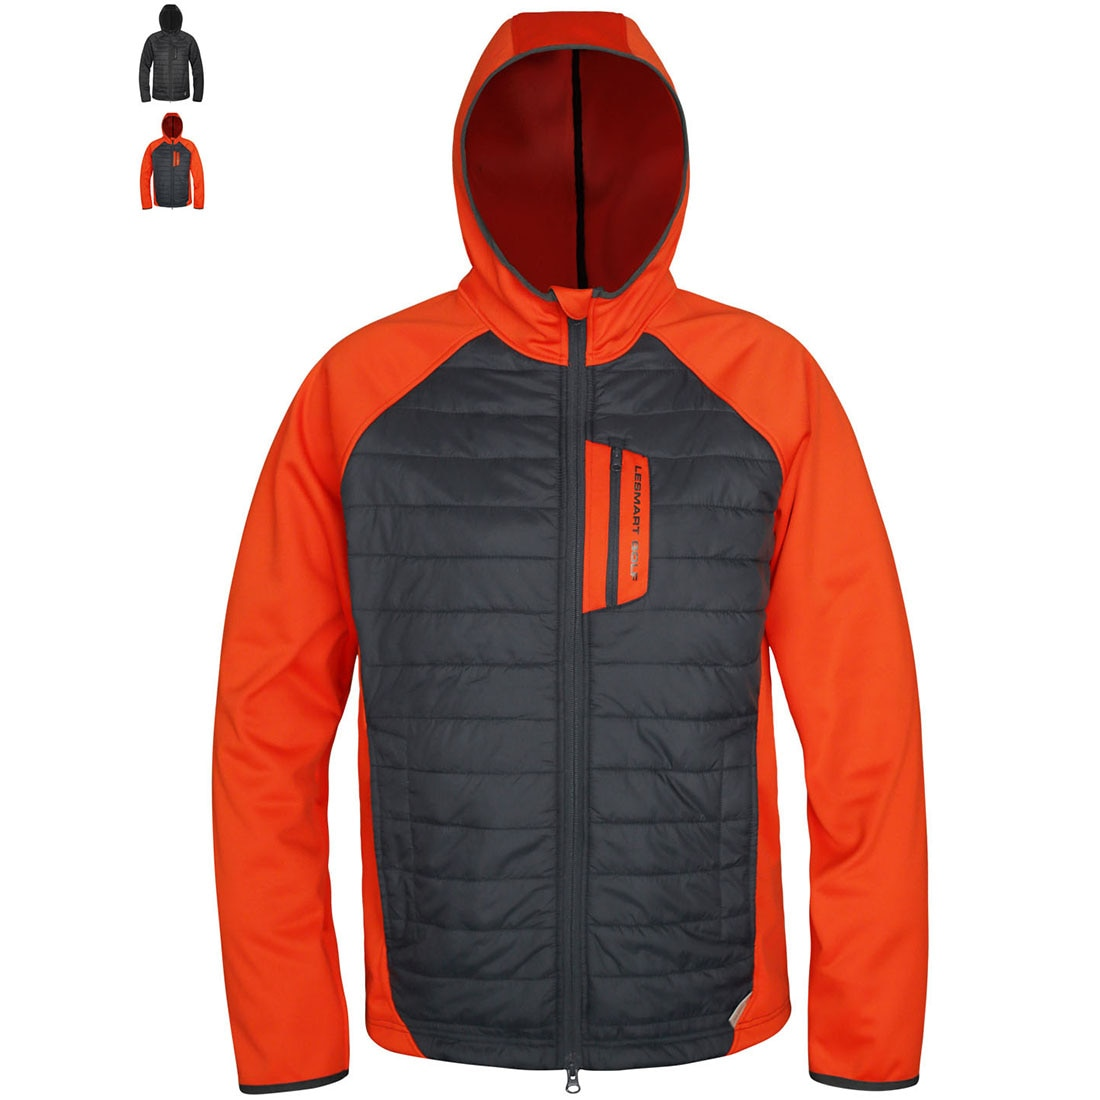 Men Thin Warm Cotton Jacket Lesmart 3M Thinsulate Thermal Insulation Material Hooded Youth Fashion Male Popular Coats Winter